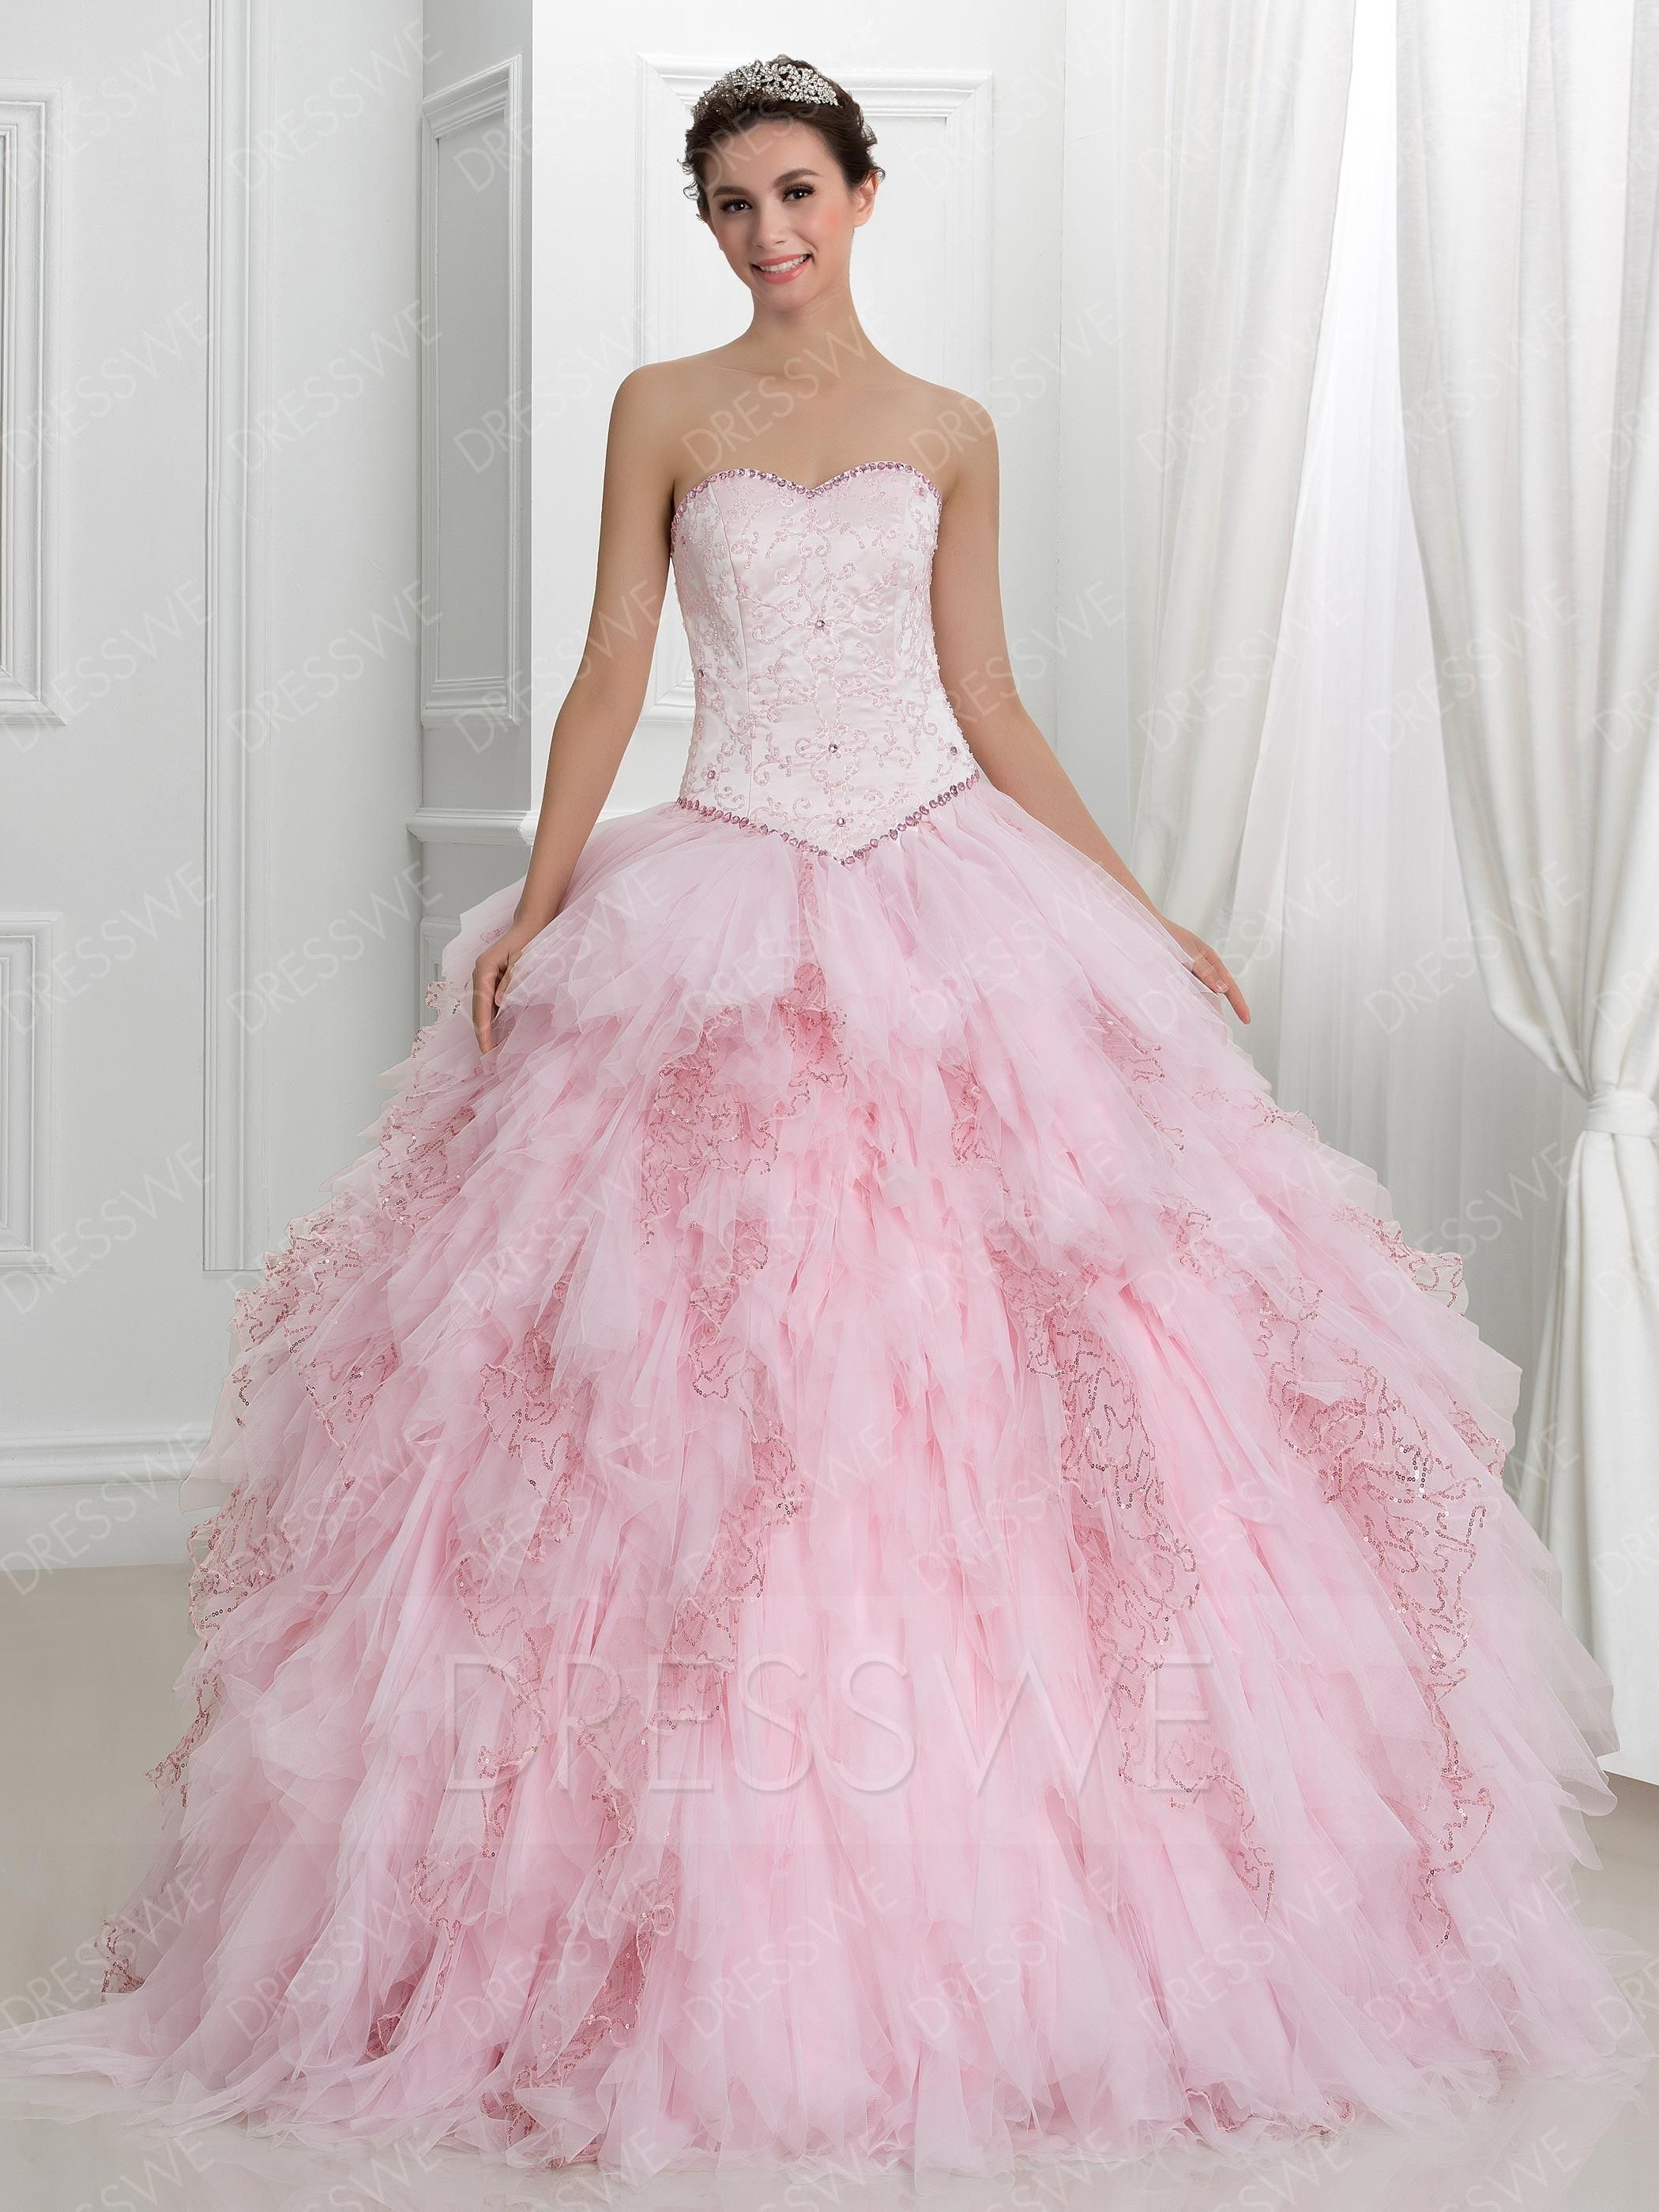 1d360380790 DressWe - DressWe Apealing Pleated Sweetheart Neck Sleeveless Tiered Lace-up  Quinceanera Dress - AdoreWe.com